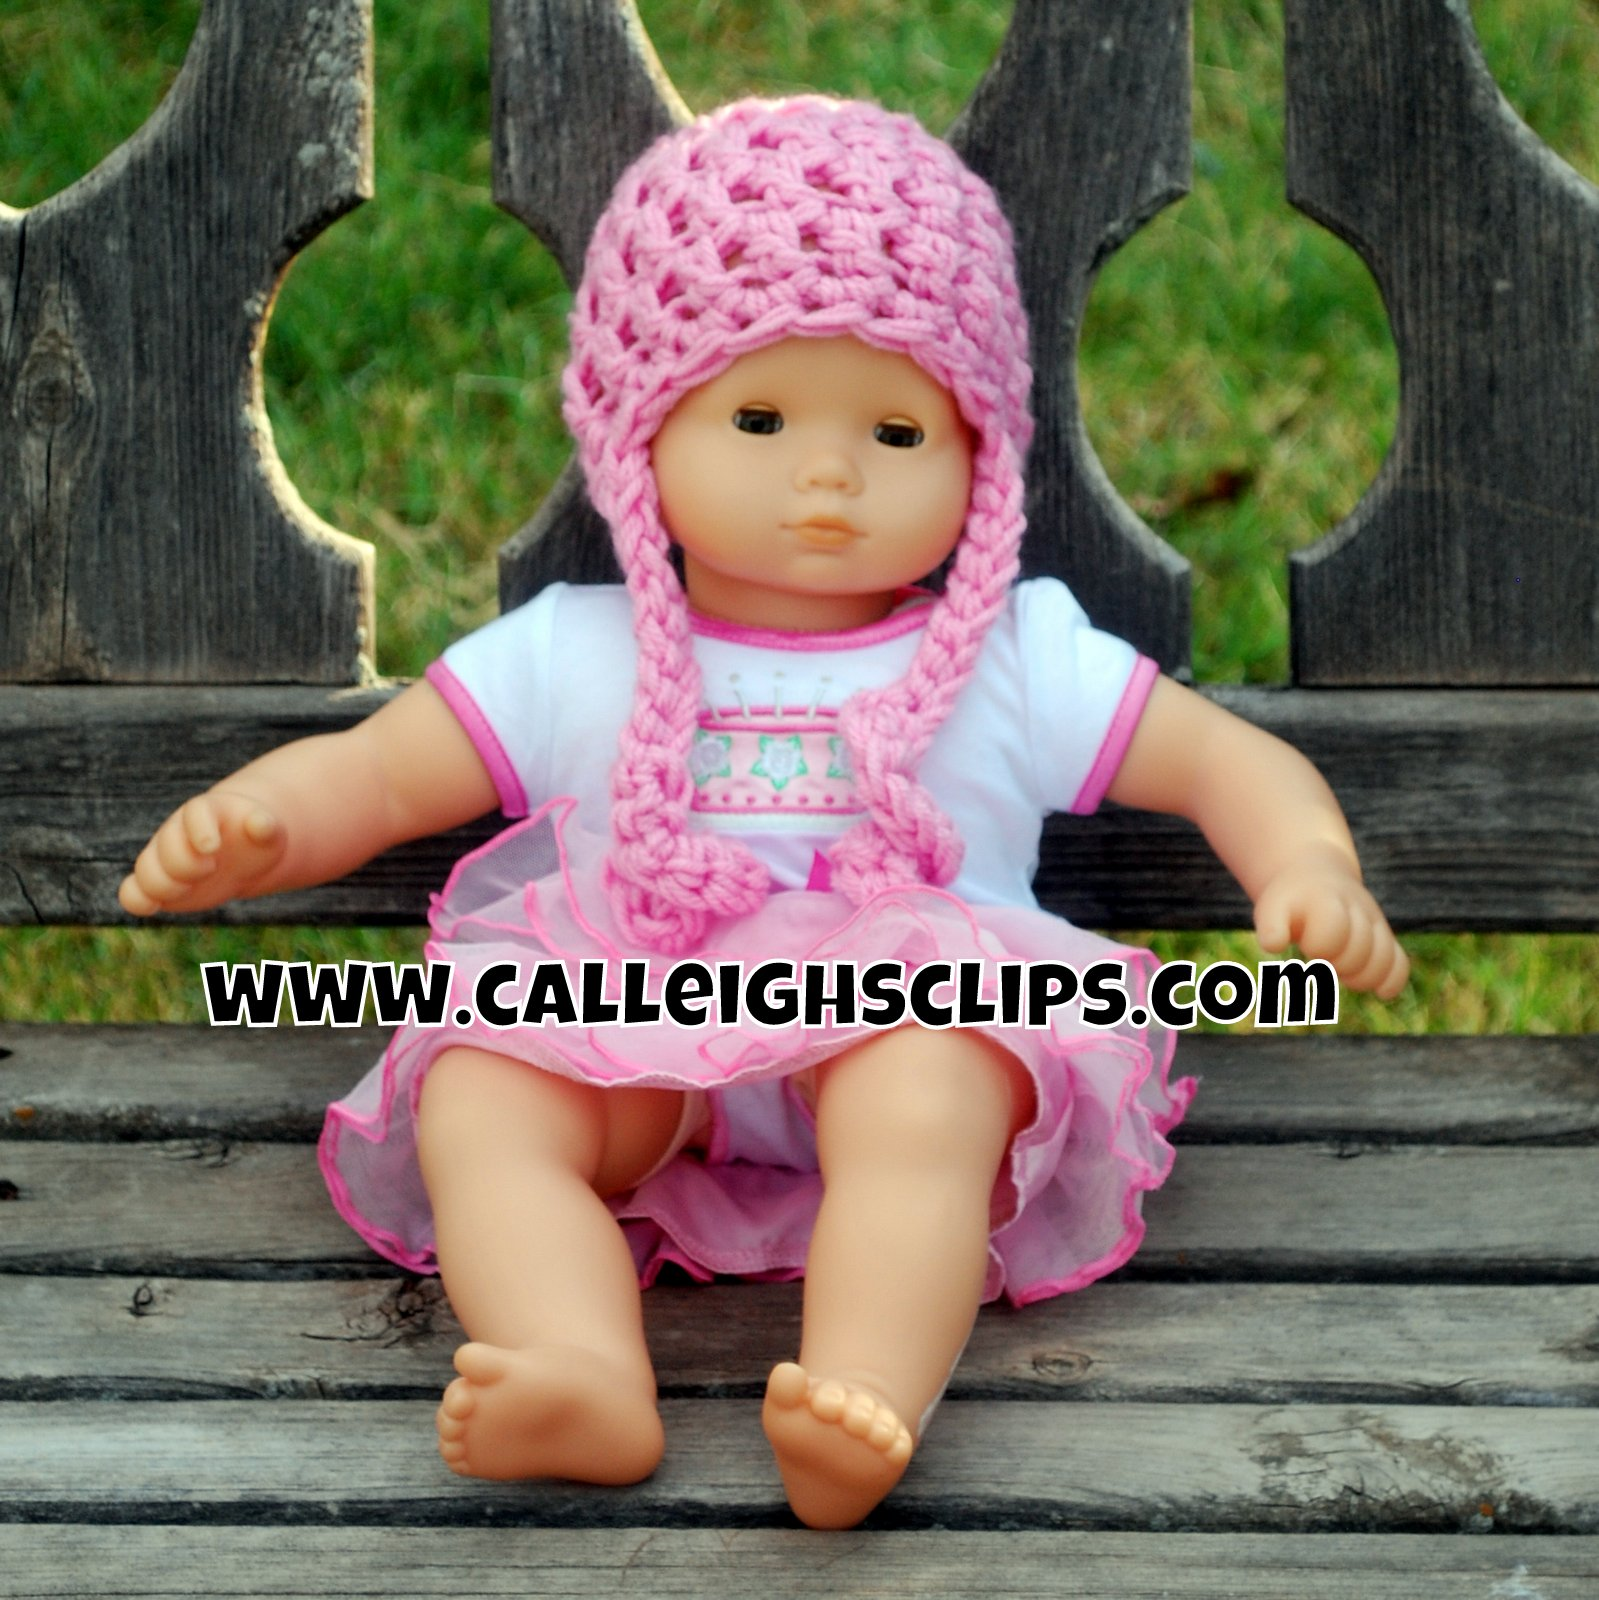 Calleigh s Clips   Crochet Creations  Free Pattern - Bitty Baby ... 0b50d07c8a0